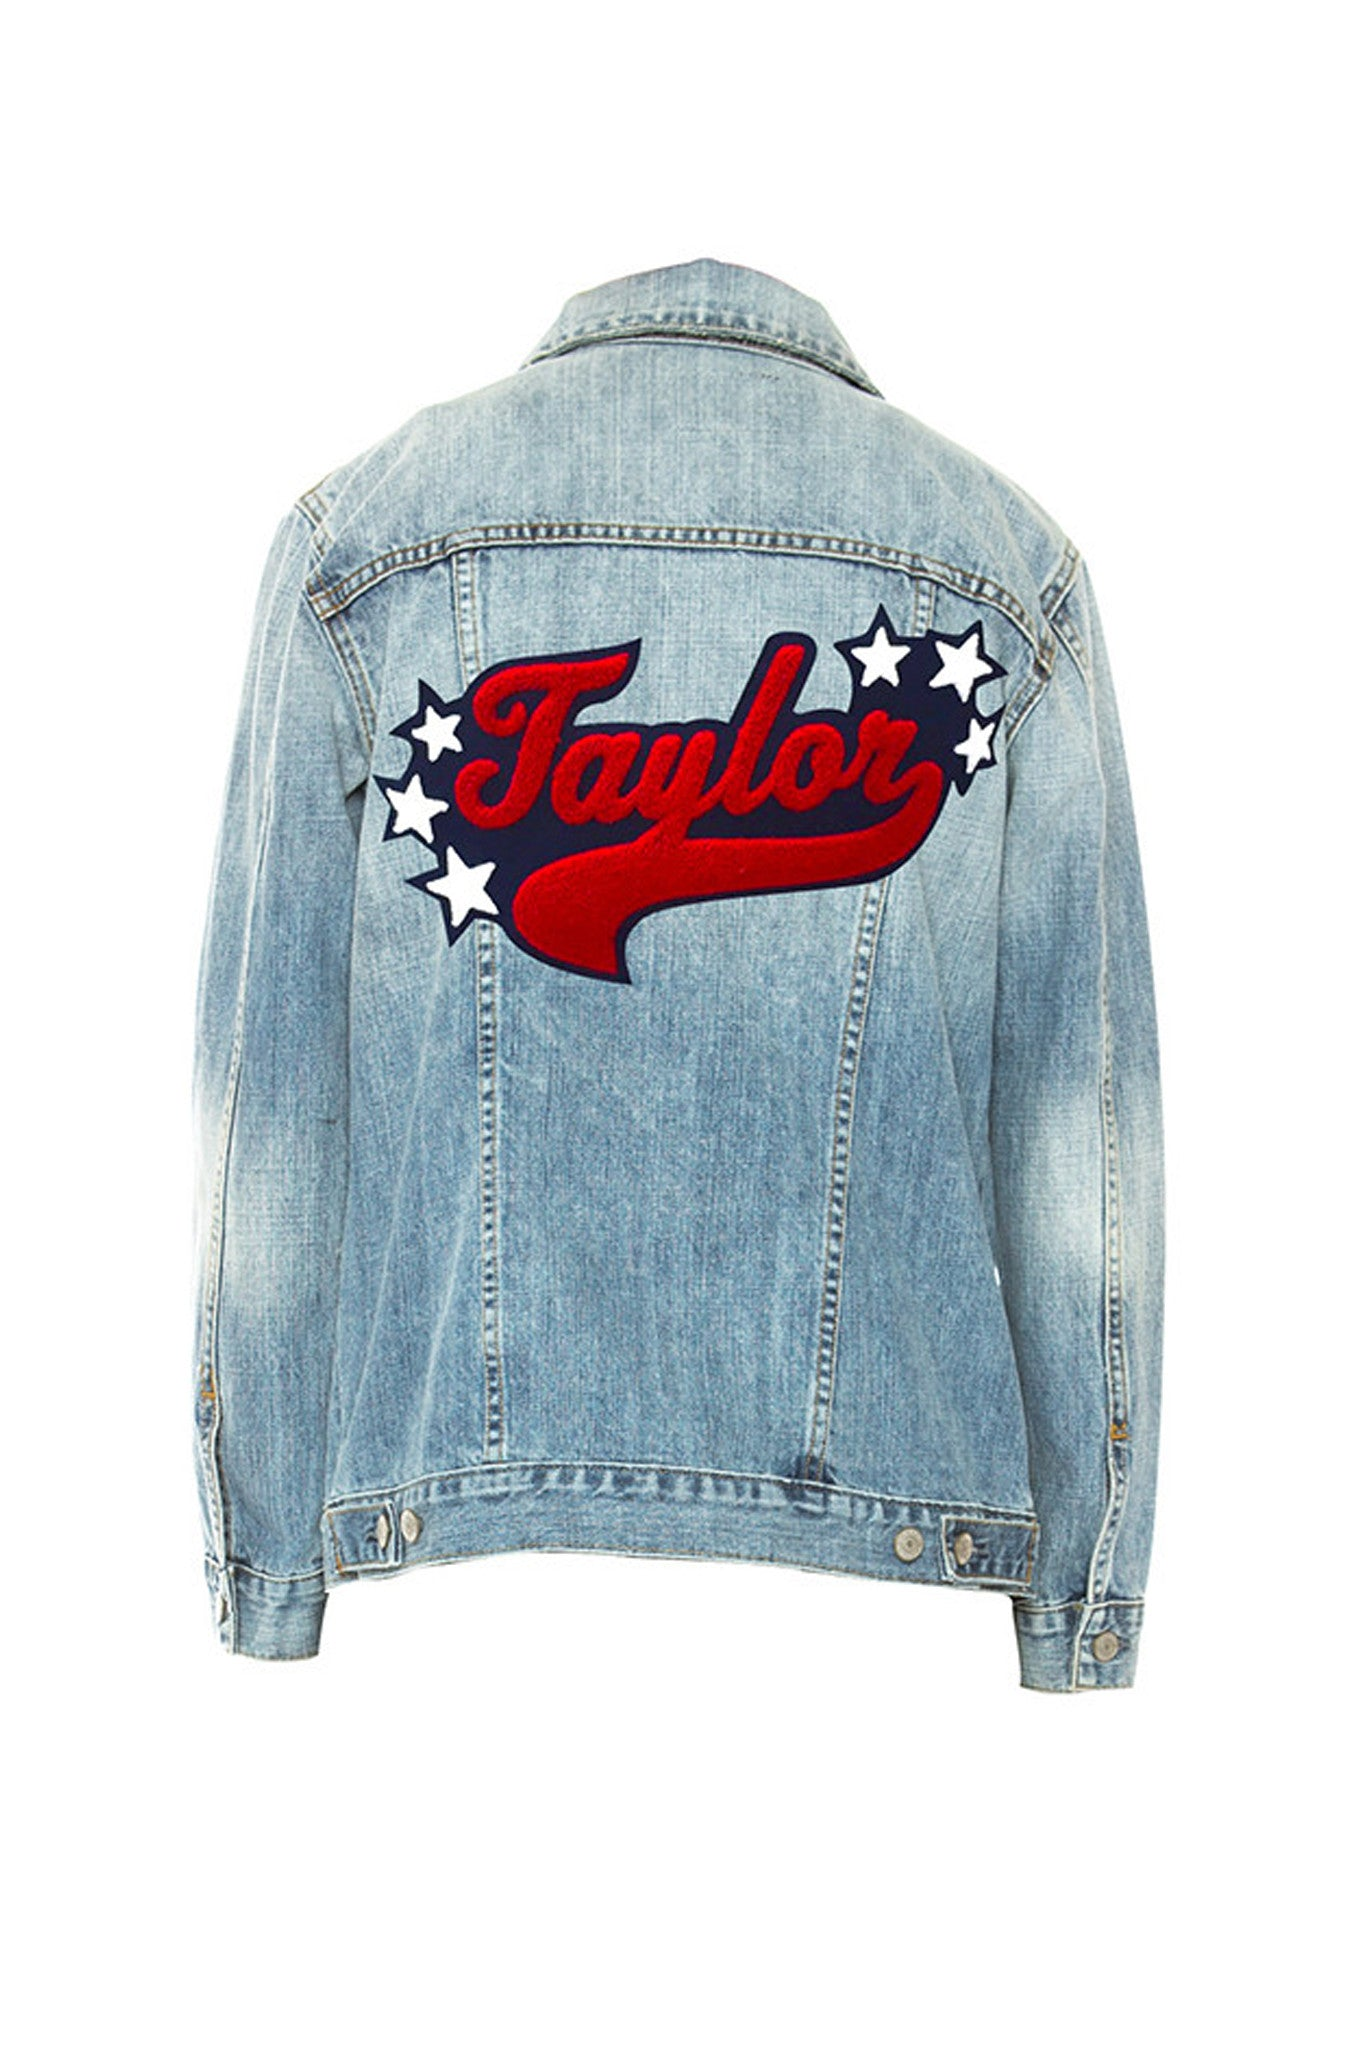 Custom Knox Letterman - Medium Vintage Wash